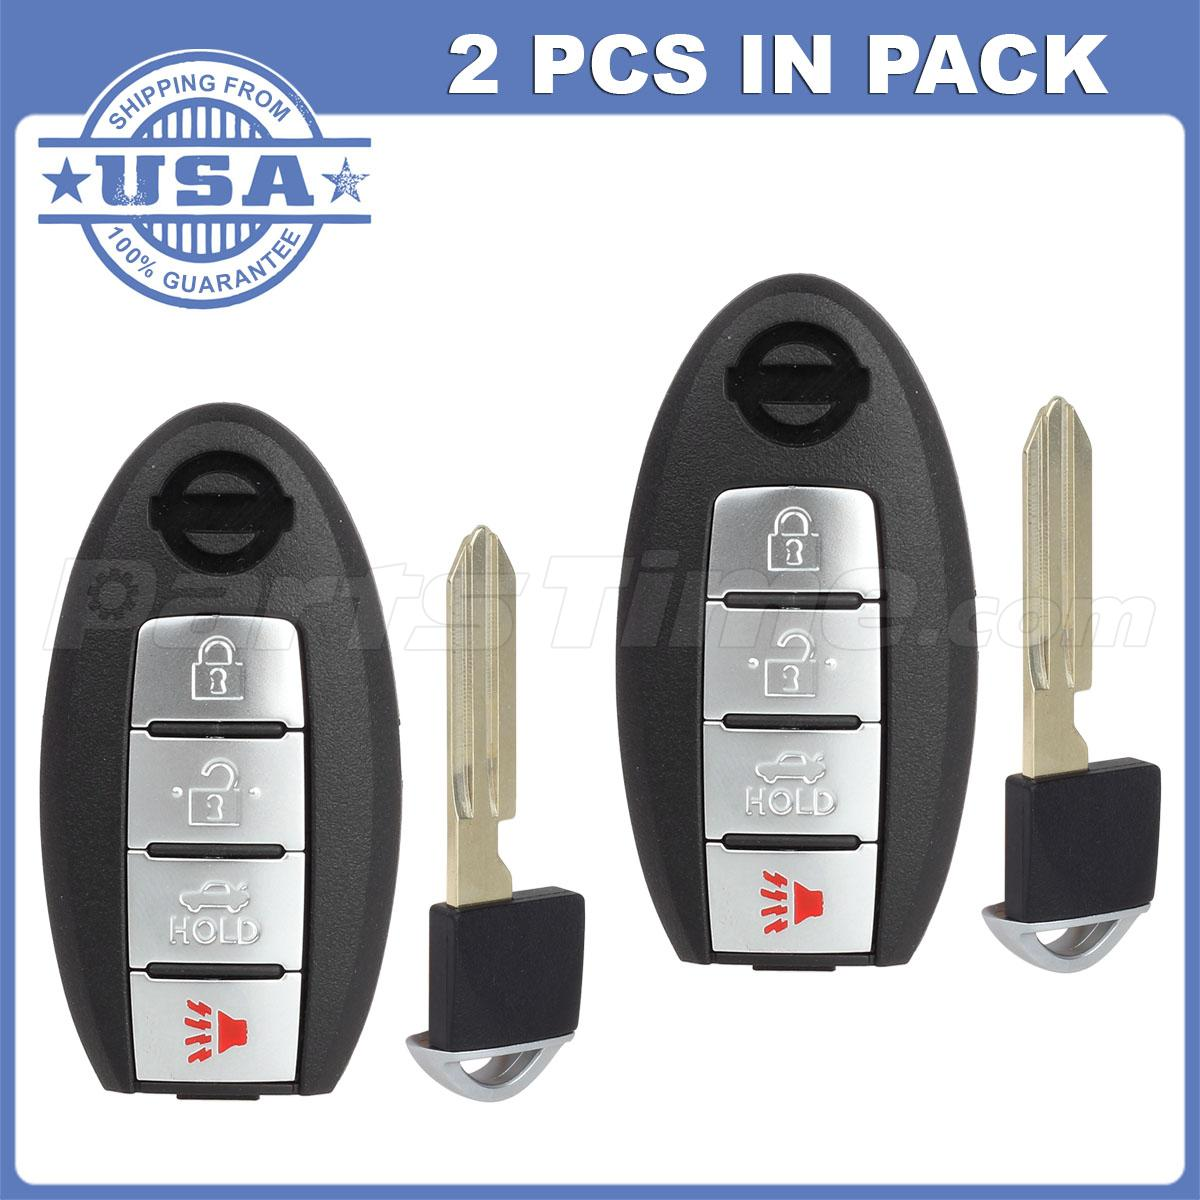 2 New 4 Buttons Uncut Replacemnet Remote Fob Key For